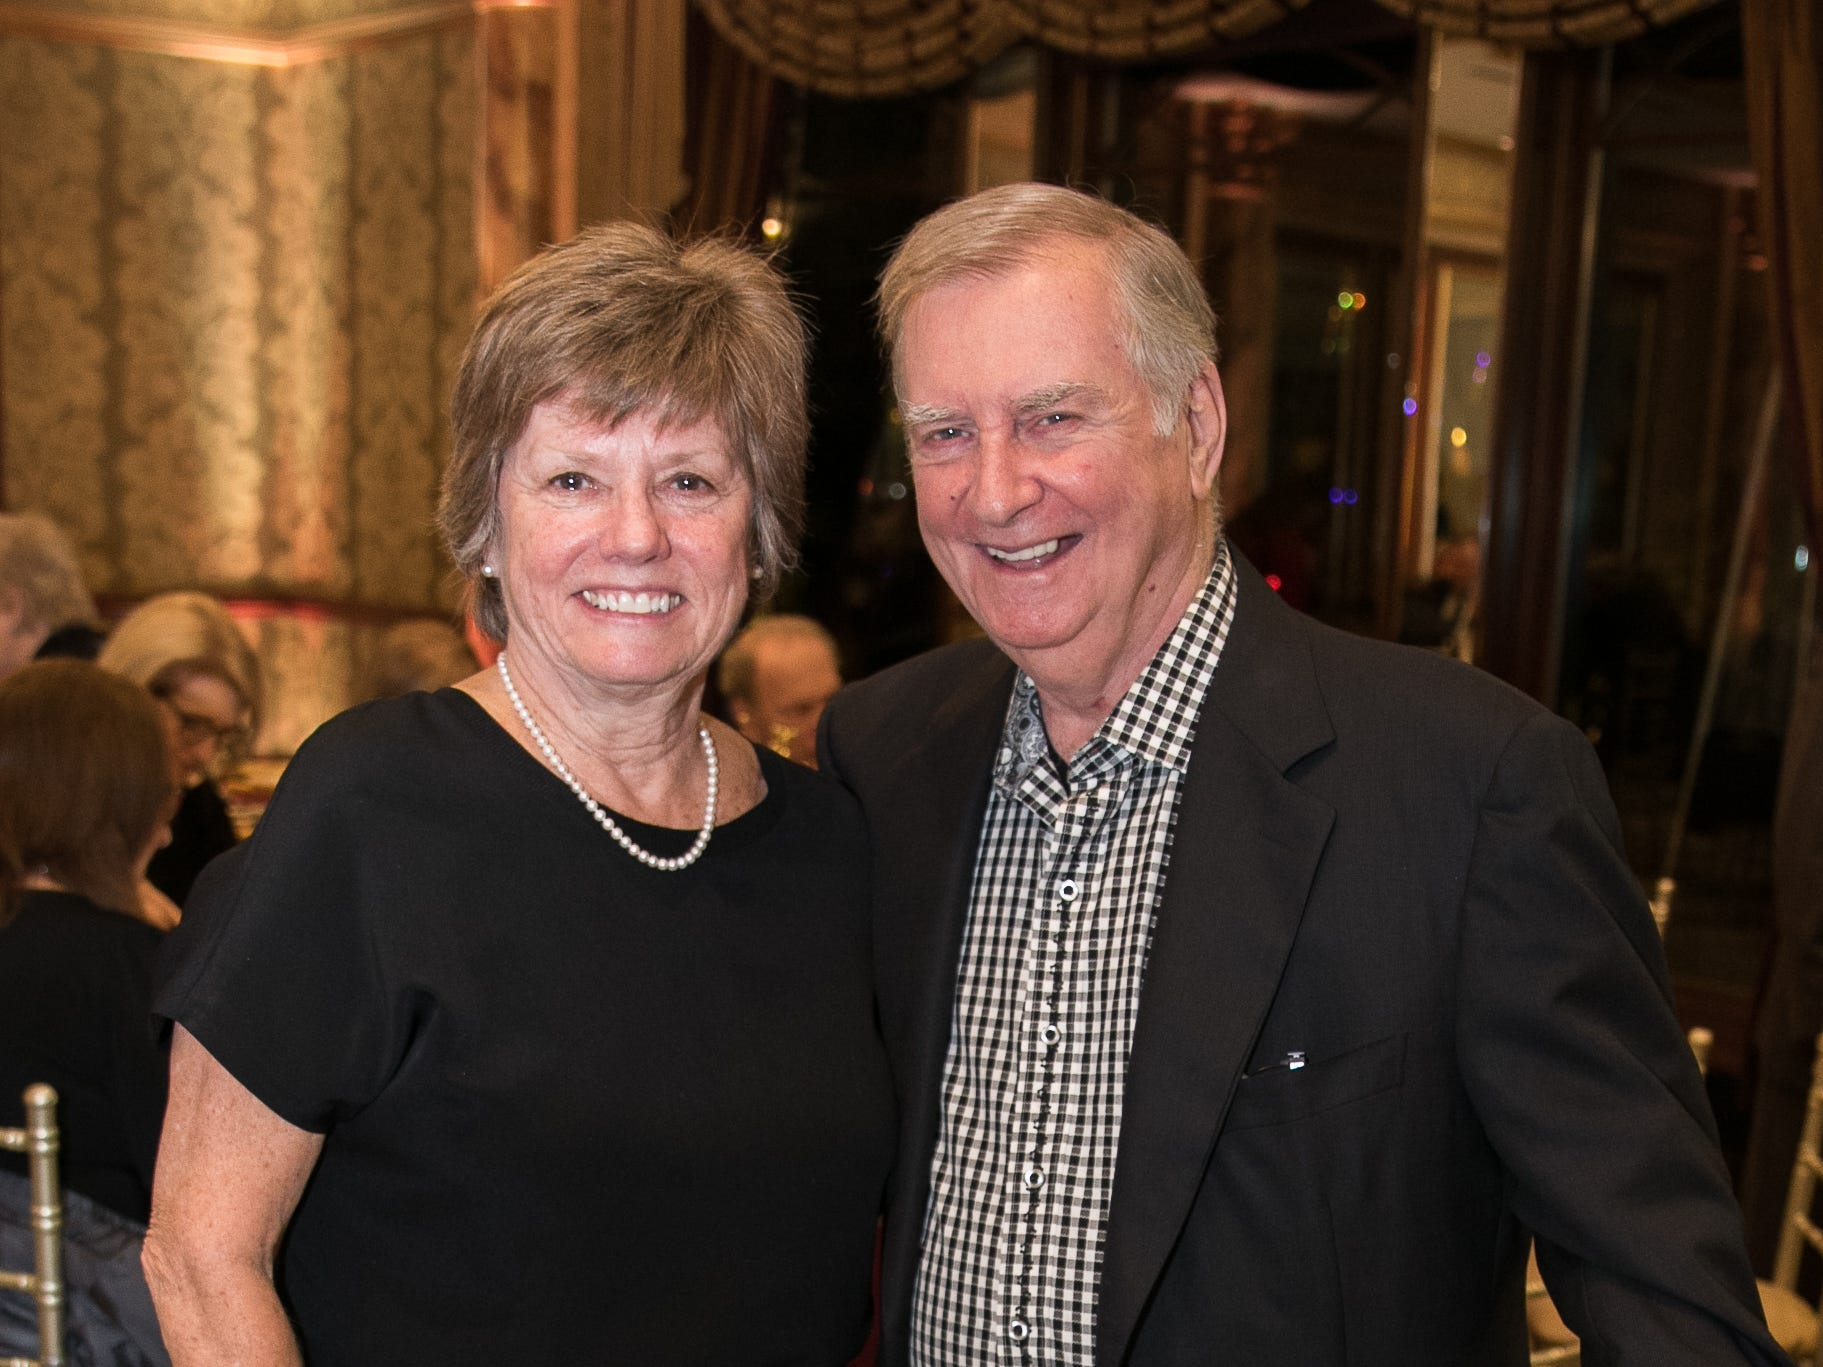 Honorees Jane and Tom Karaty. Youth Consultation Service – YCS held their 100th Anniversary Celebration at Seasons in Washington Township.11/5/2018